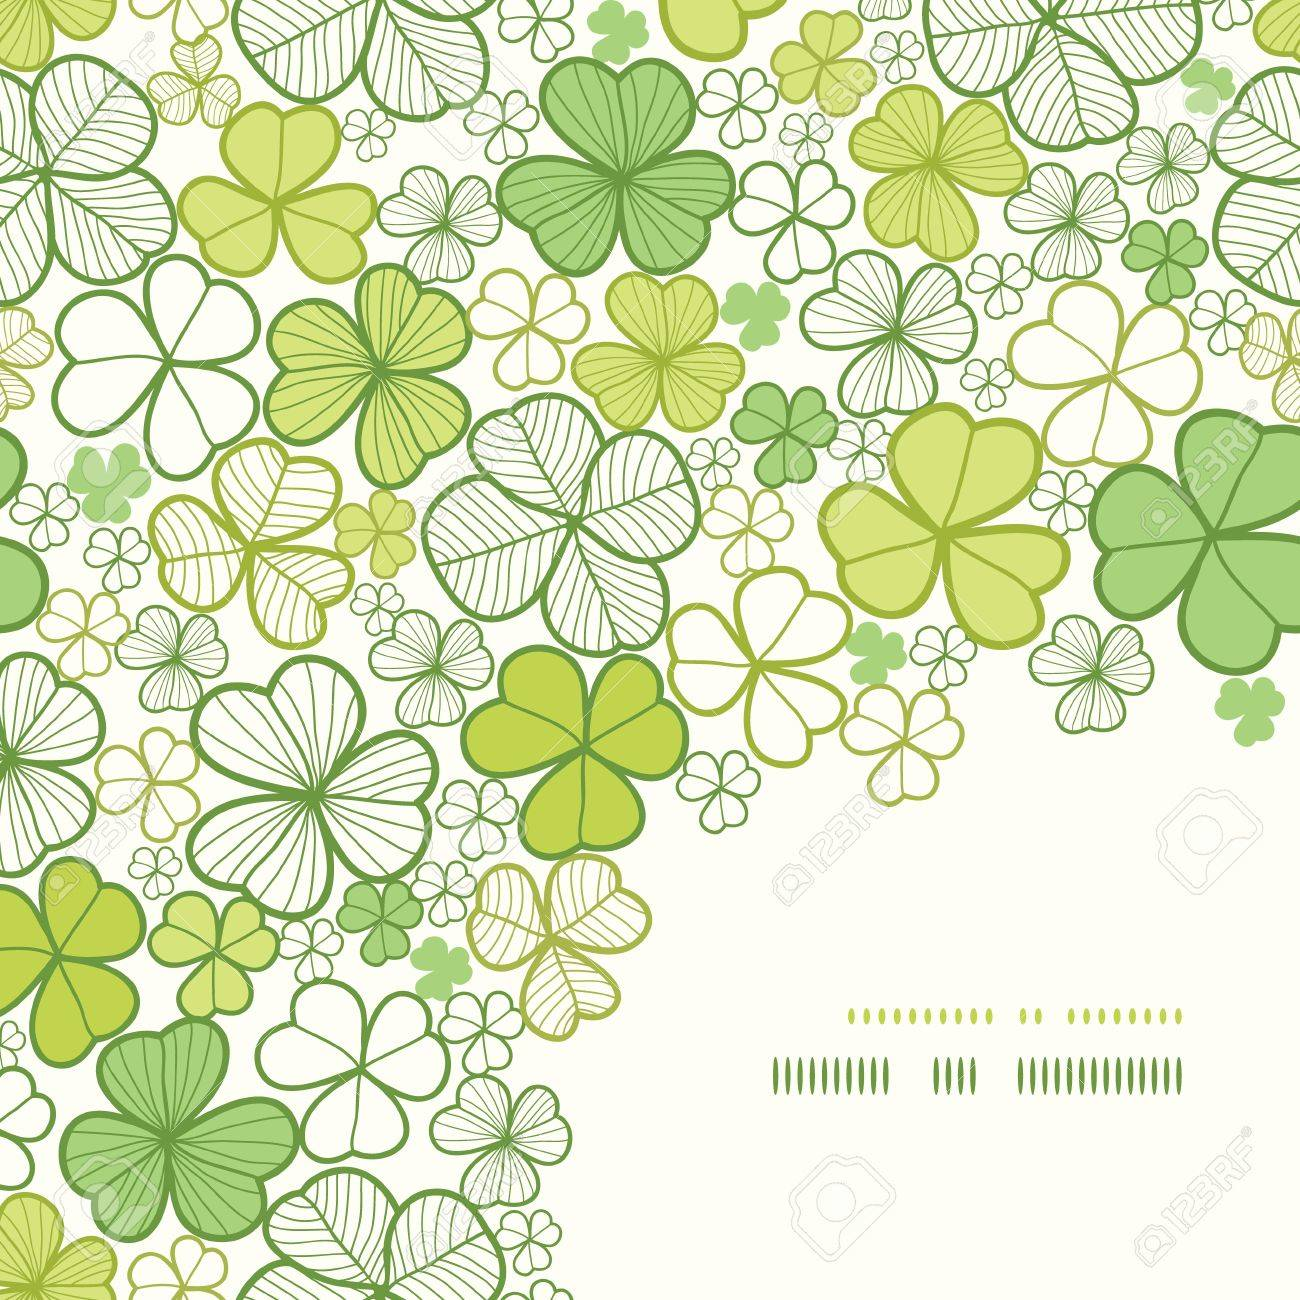 Clover line art corner decor seamless pattern background Stock Vector - 18305652